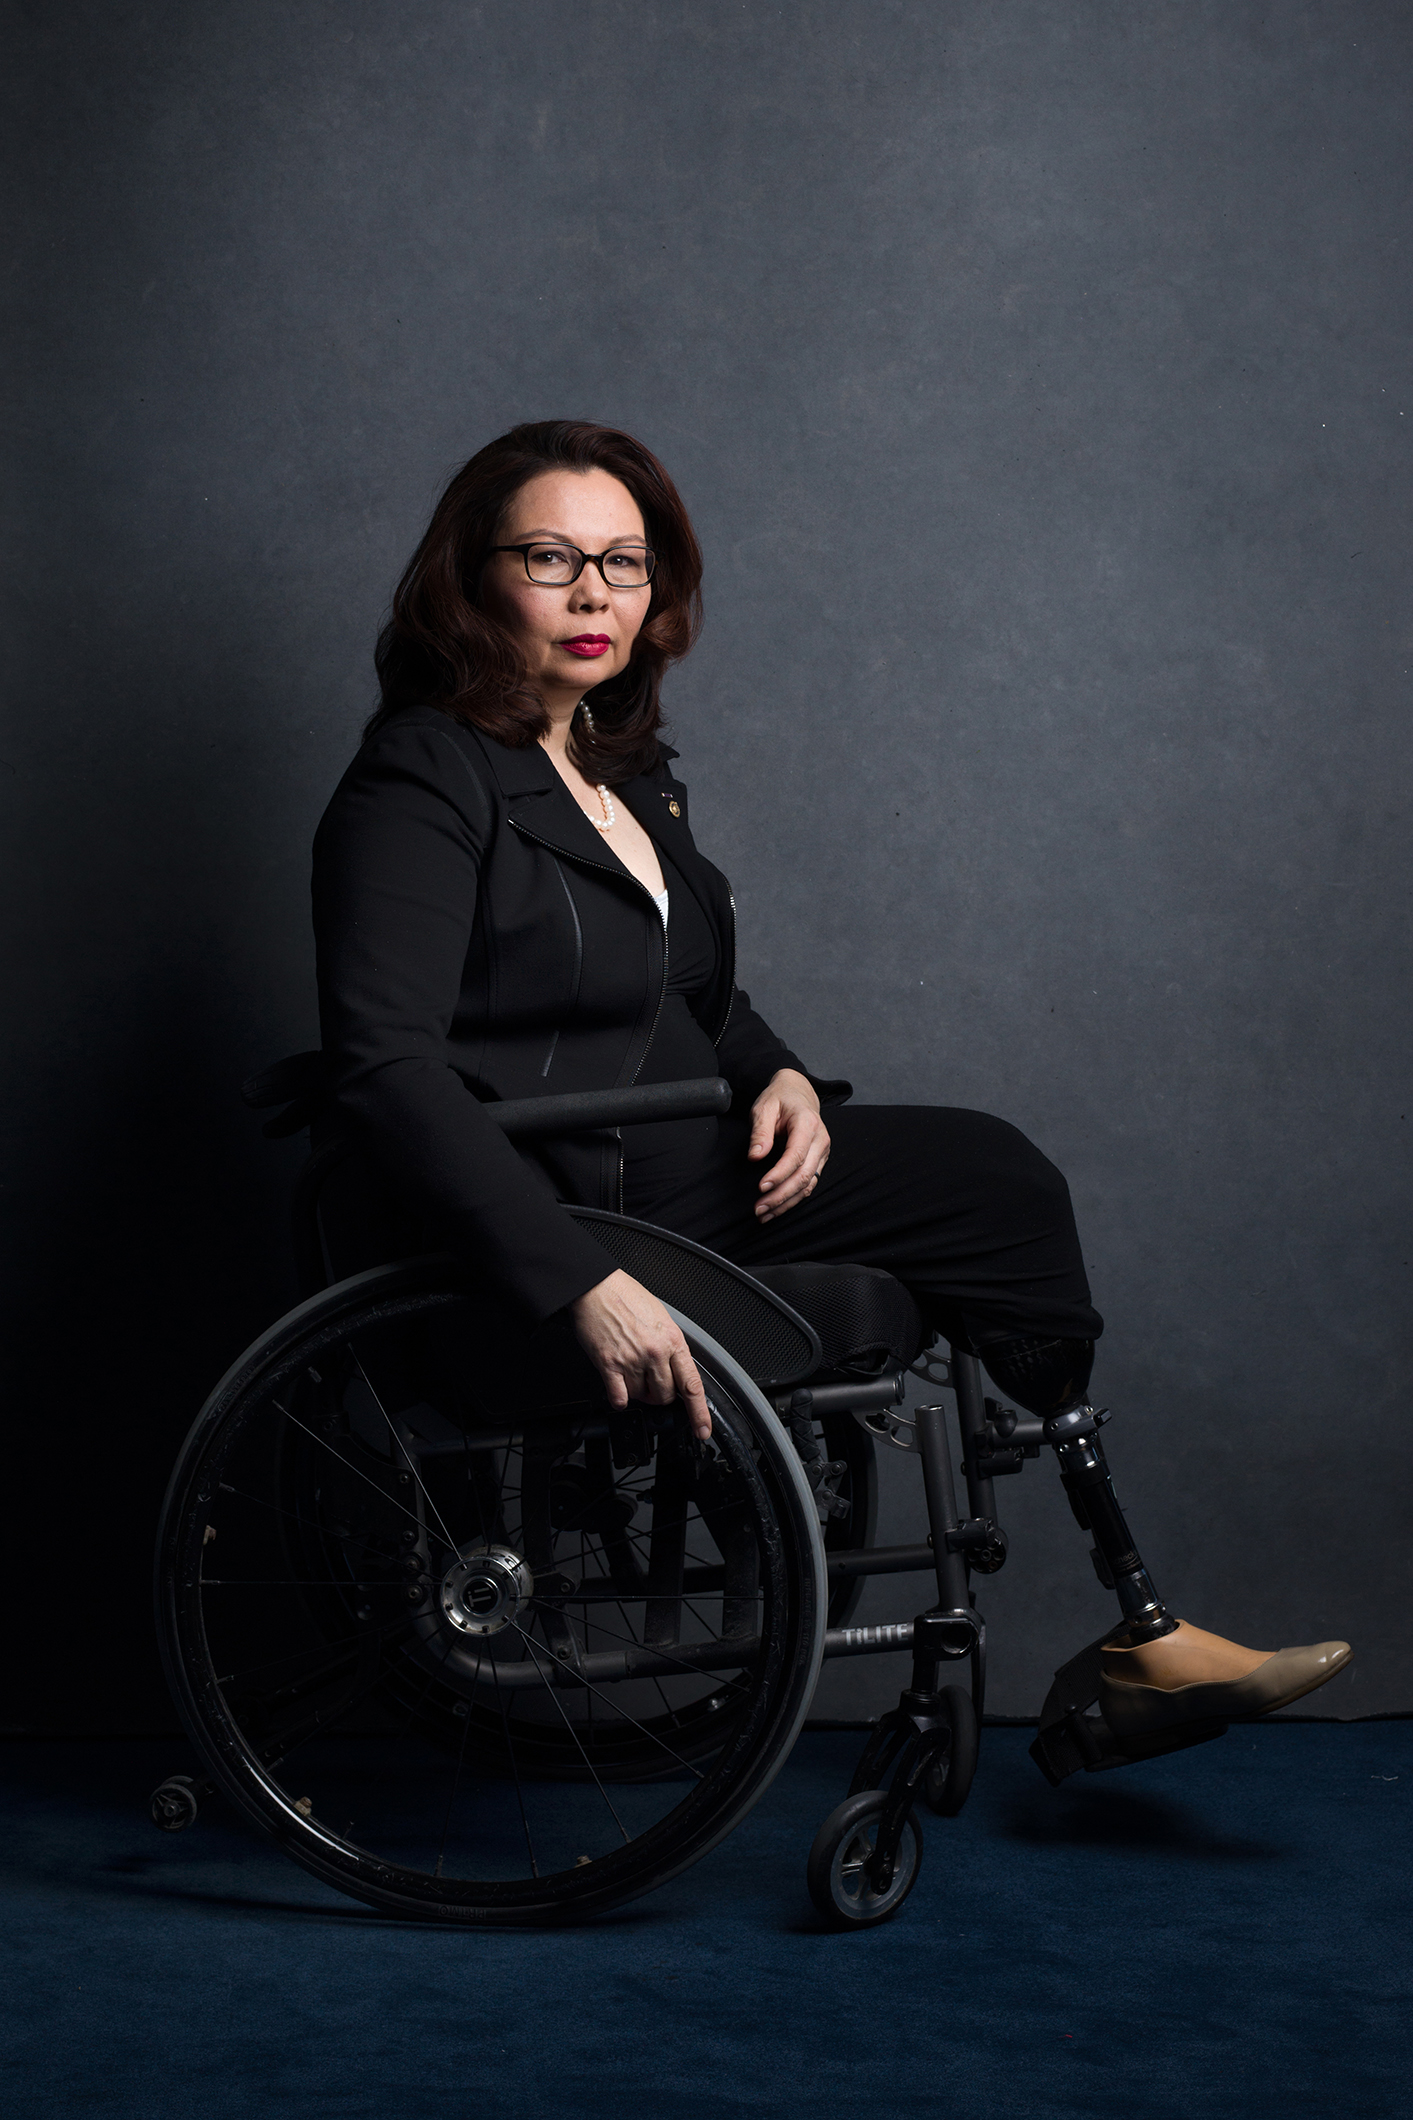 ***HOLD FOR WOMEN IN CONGRESS PROJECT, CONTACT MARISA SCHWARTZ TAYLOR*** Senator Tammy Duckworth, Democrat of Illinois